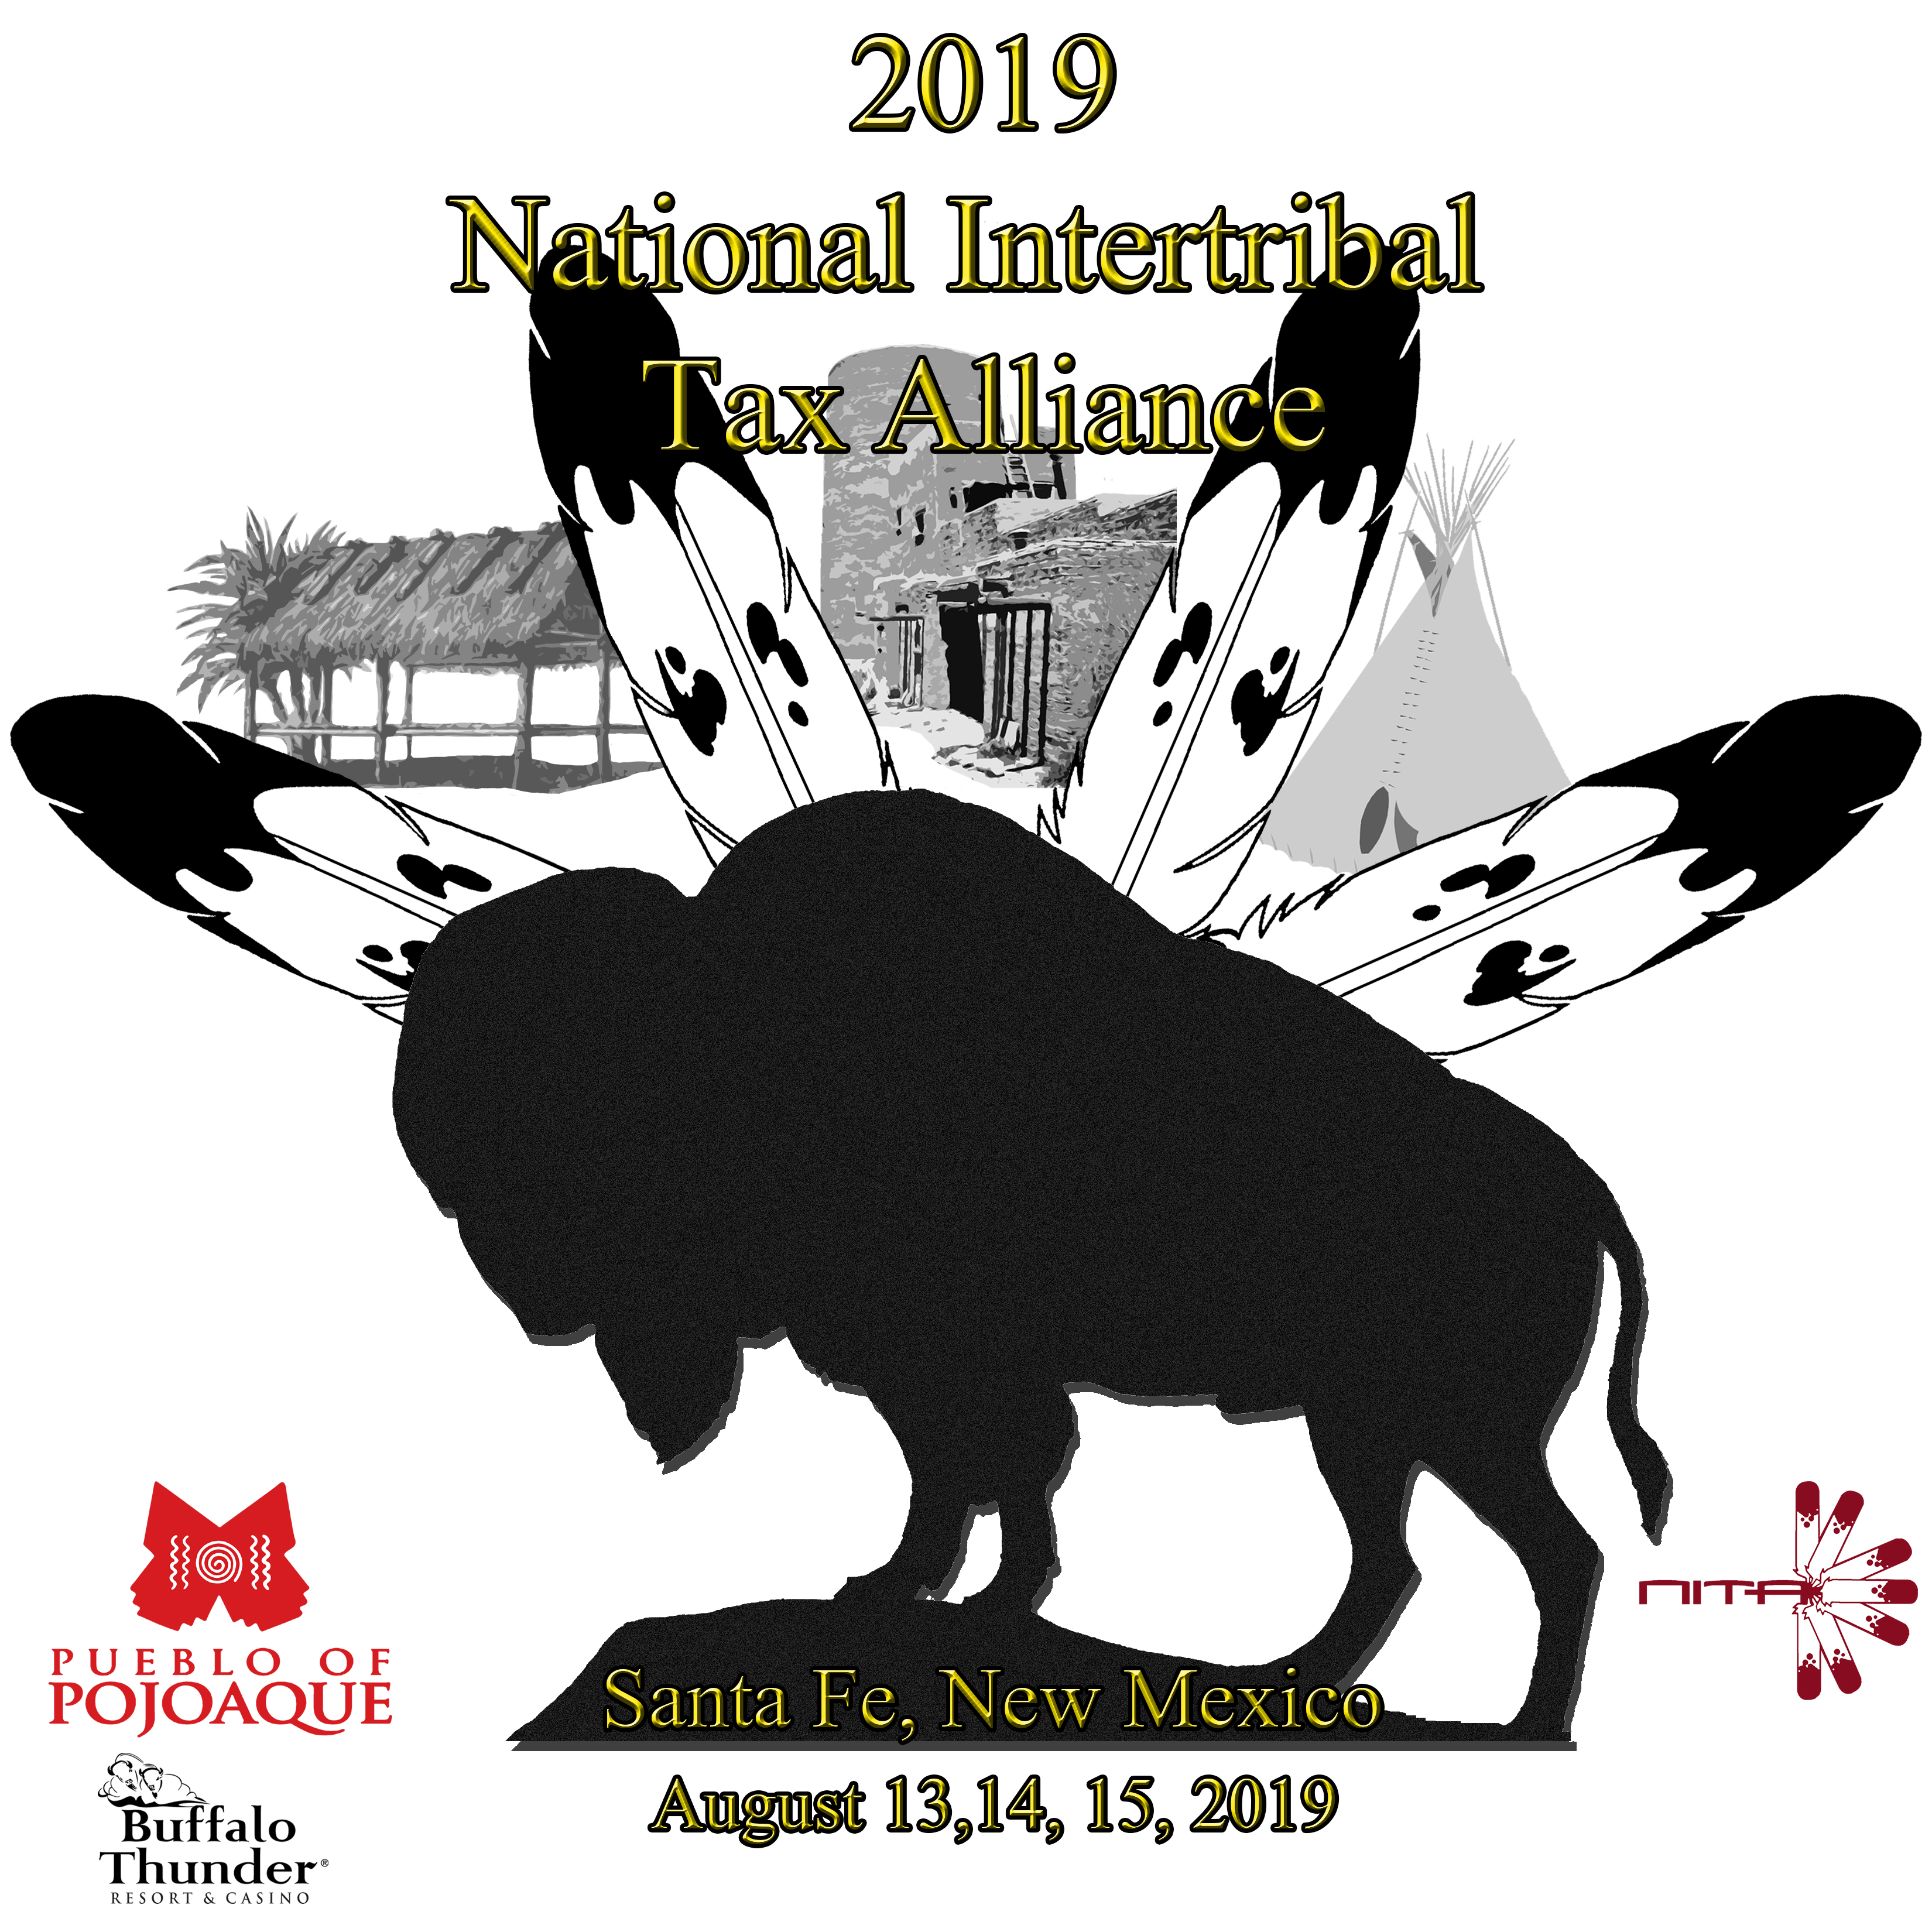 2019 National Intertribal Tax Alliance